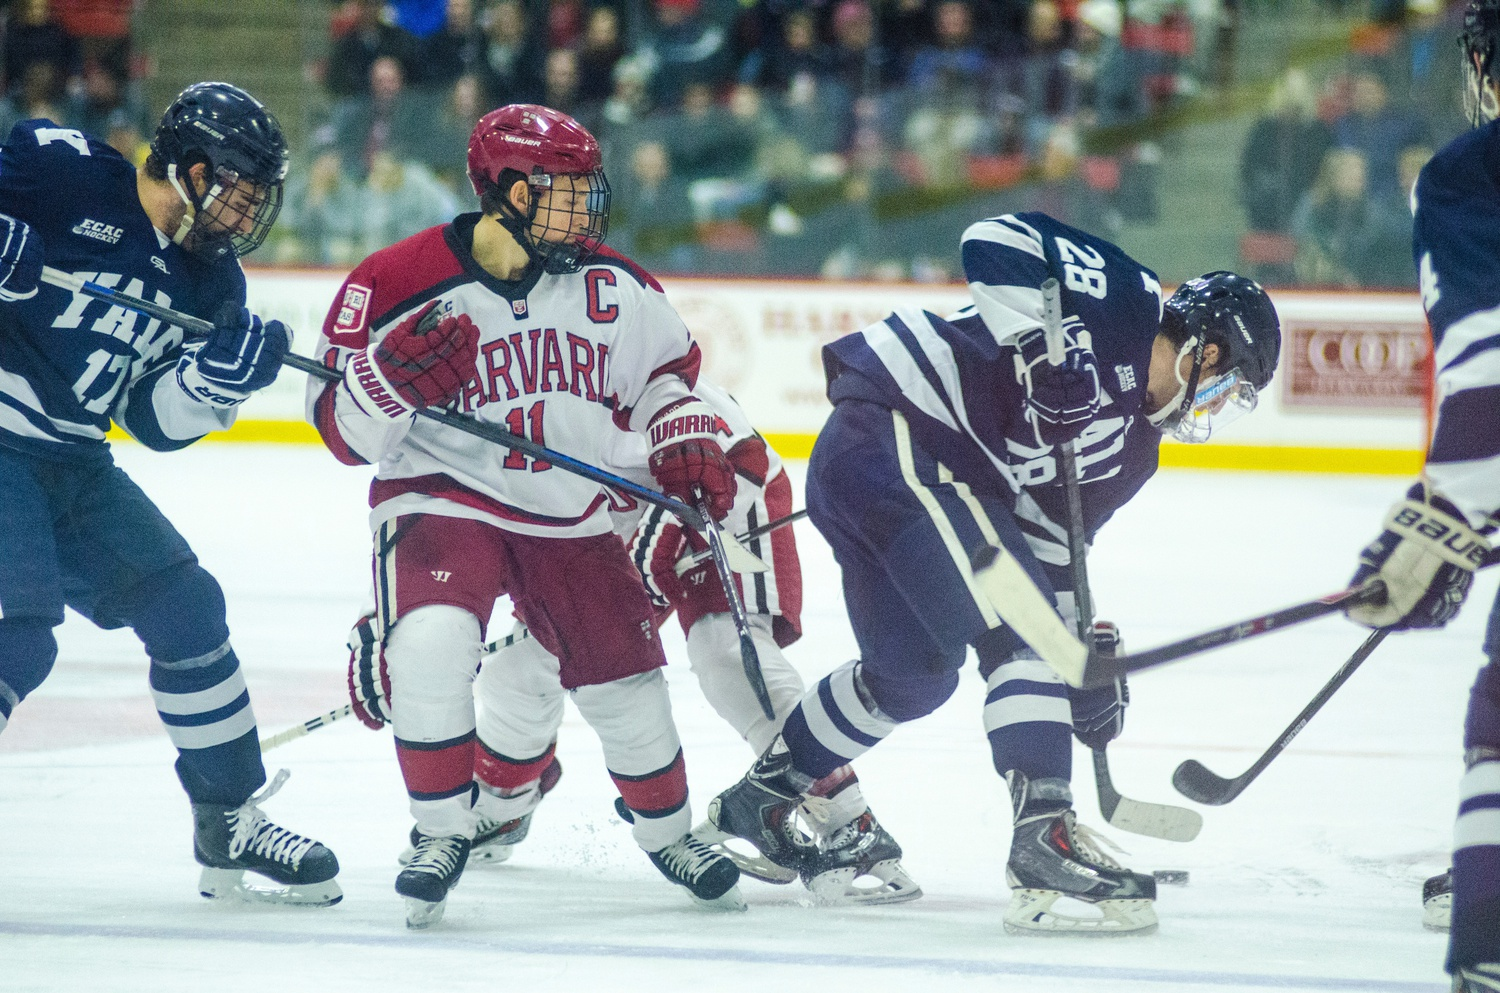 The Harvard and Yale men's hockey teams, shown in action last season, will square off for the first time this year at the Bright-Landry Hockey Center on Friday.